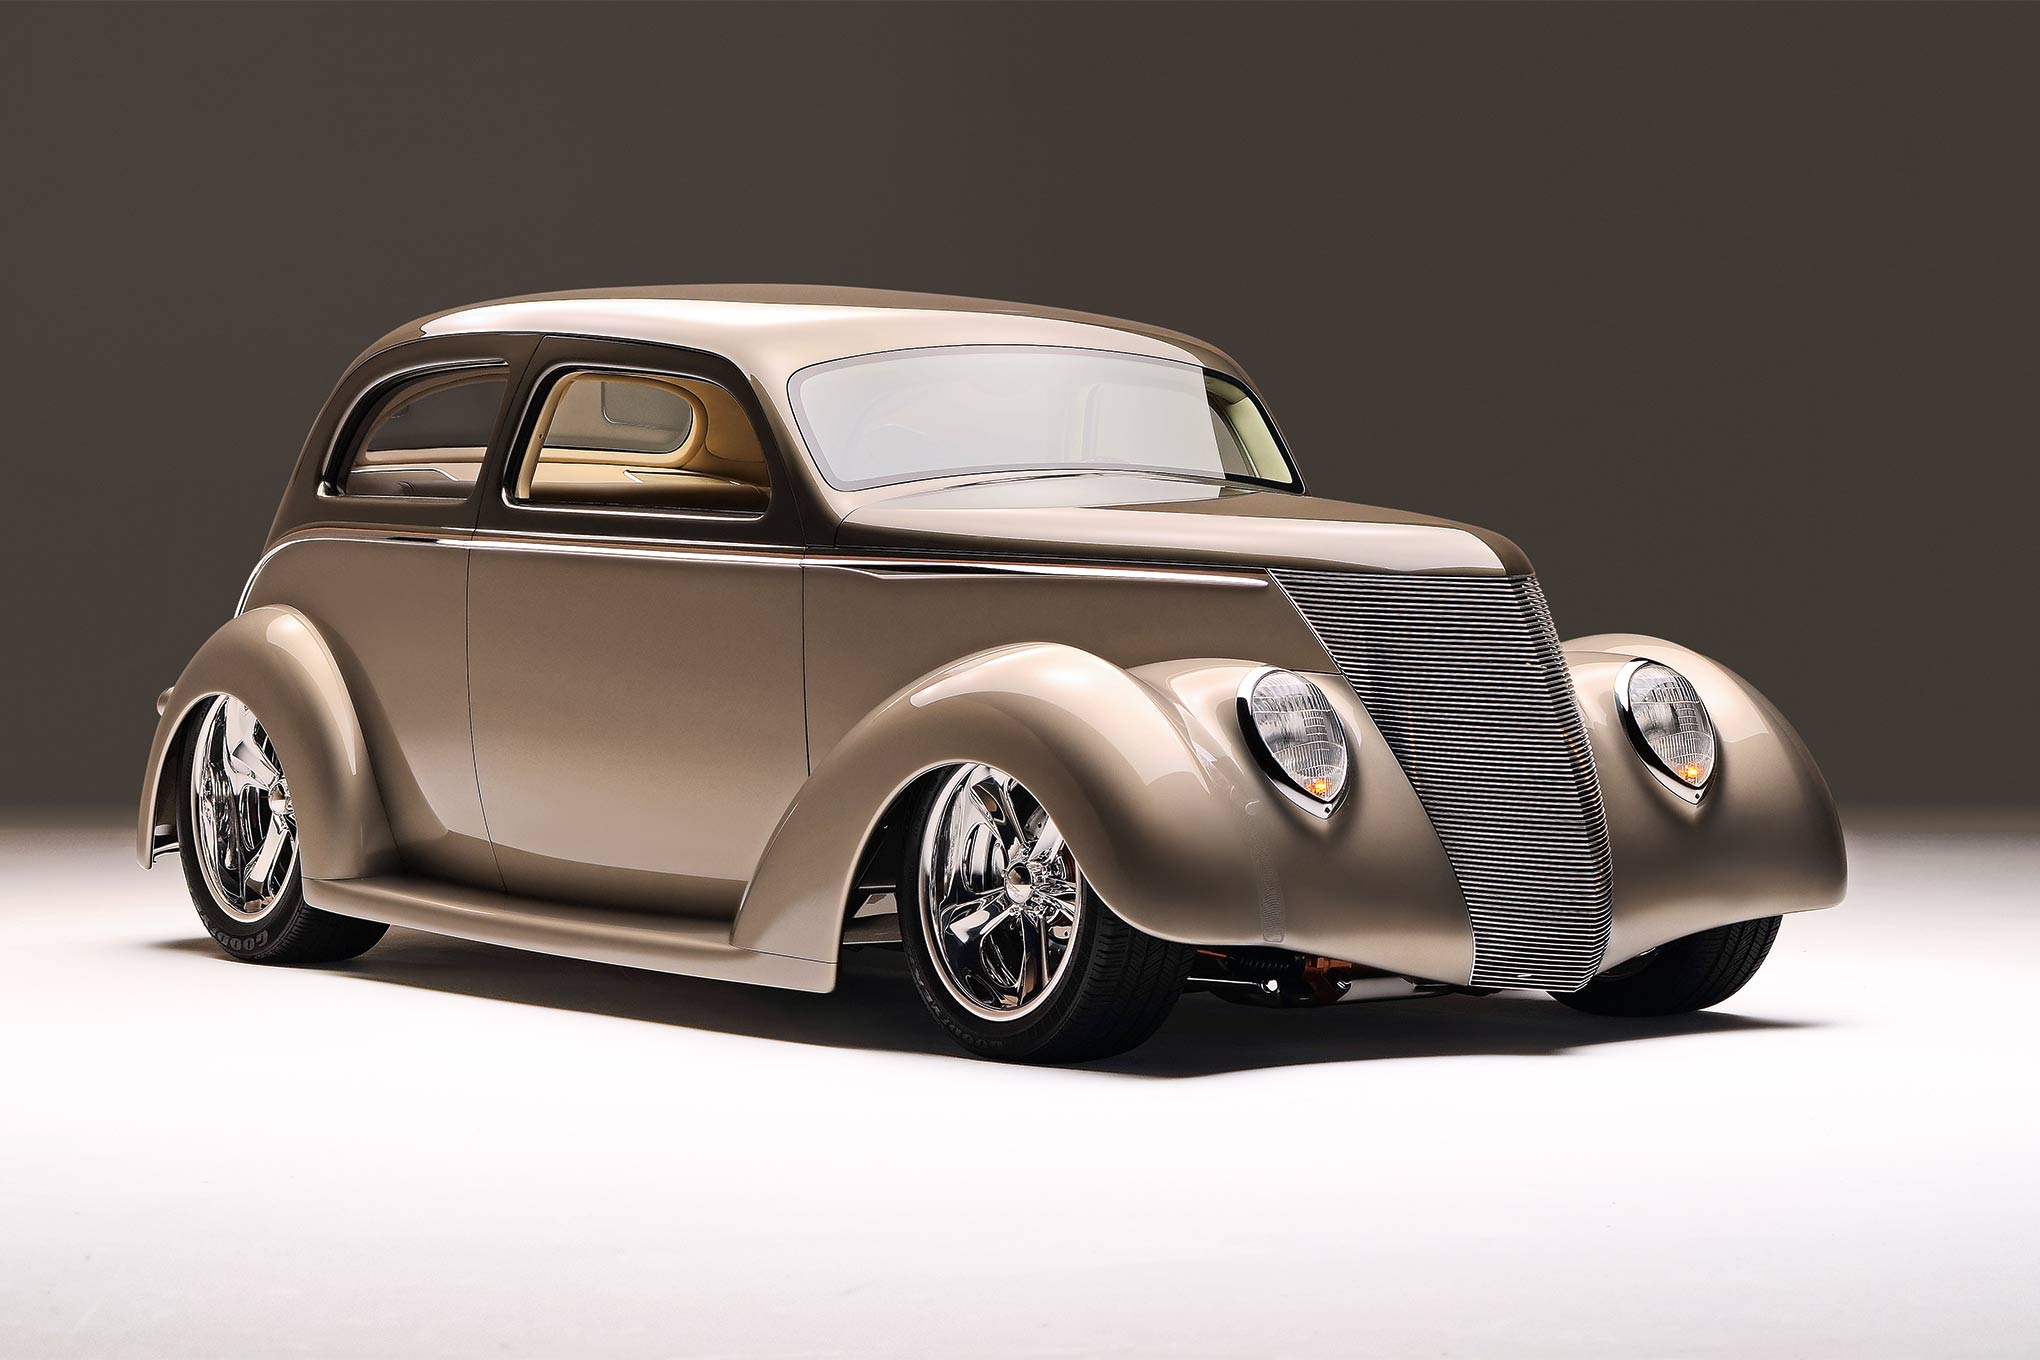 The sedan owes its profile to three people: Jason Rushforth, who called out the car's general shape in renderings, and Charley Hutton and Roy Schmidt, who rendered that shape in metal. They executed the top's distinctive chop by leaning the A-pillars back by 3 inches and the rear panel forward by 4.